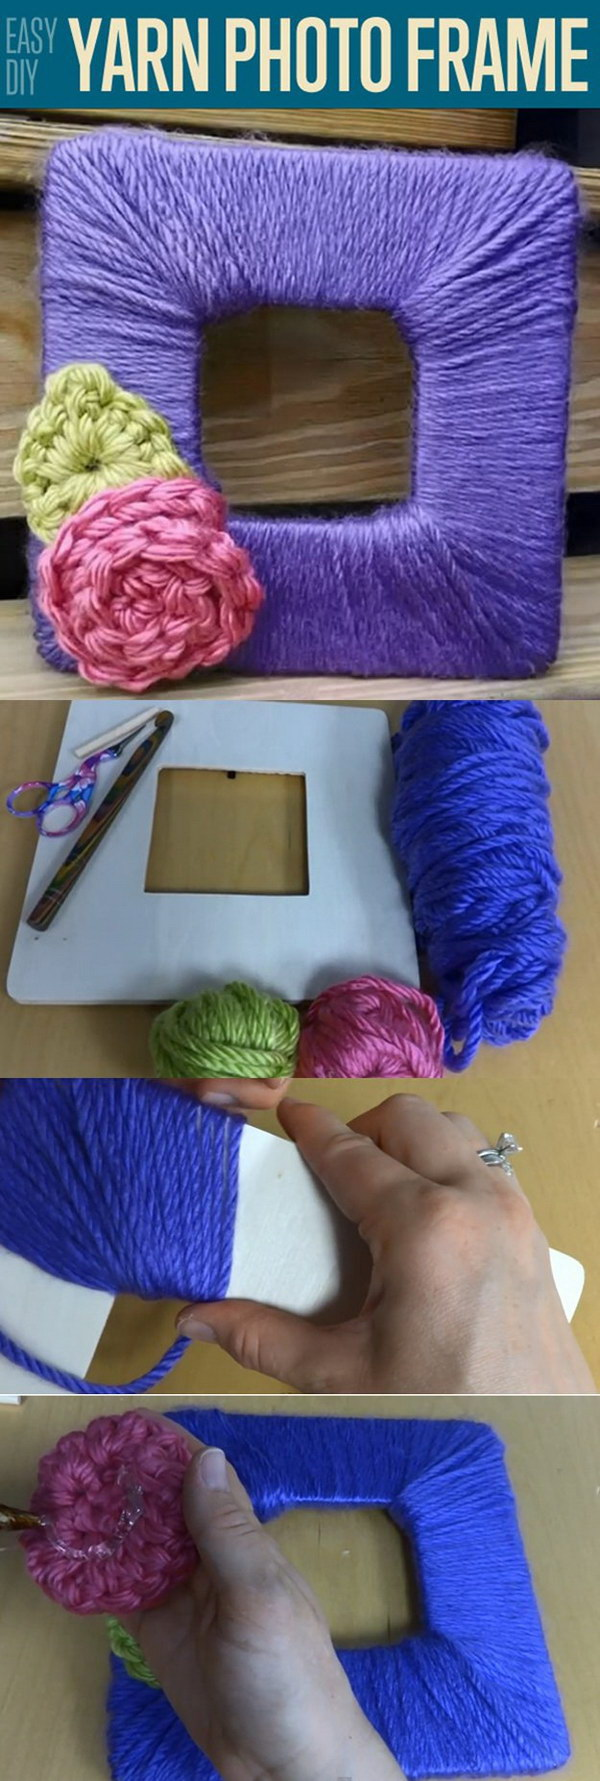 Yarn DIY Photo Frame.